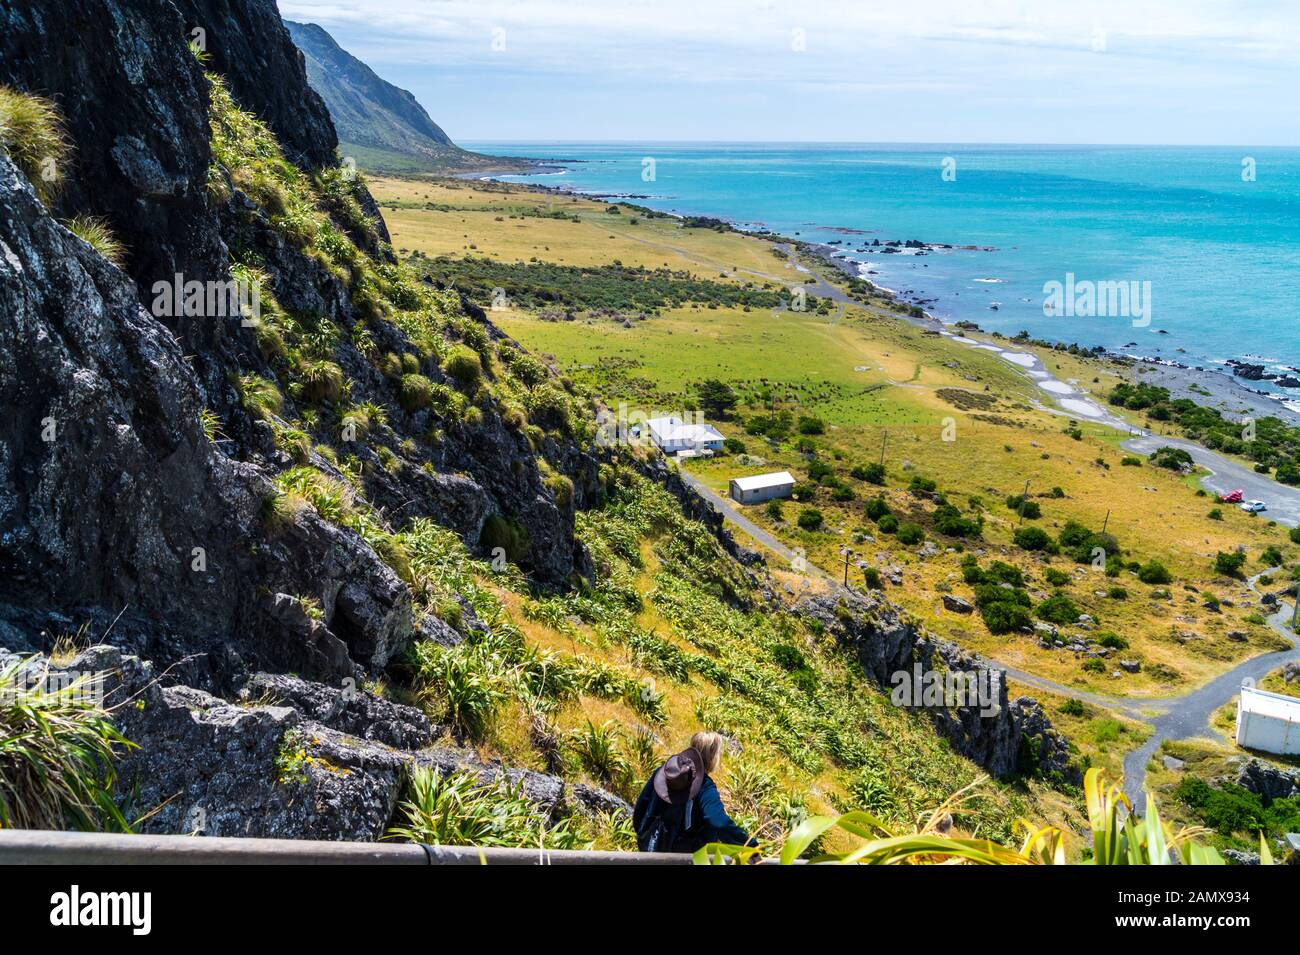 cape-palliser-wairarapa-north-island-new-zealand-2AMX934.jpg